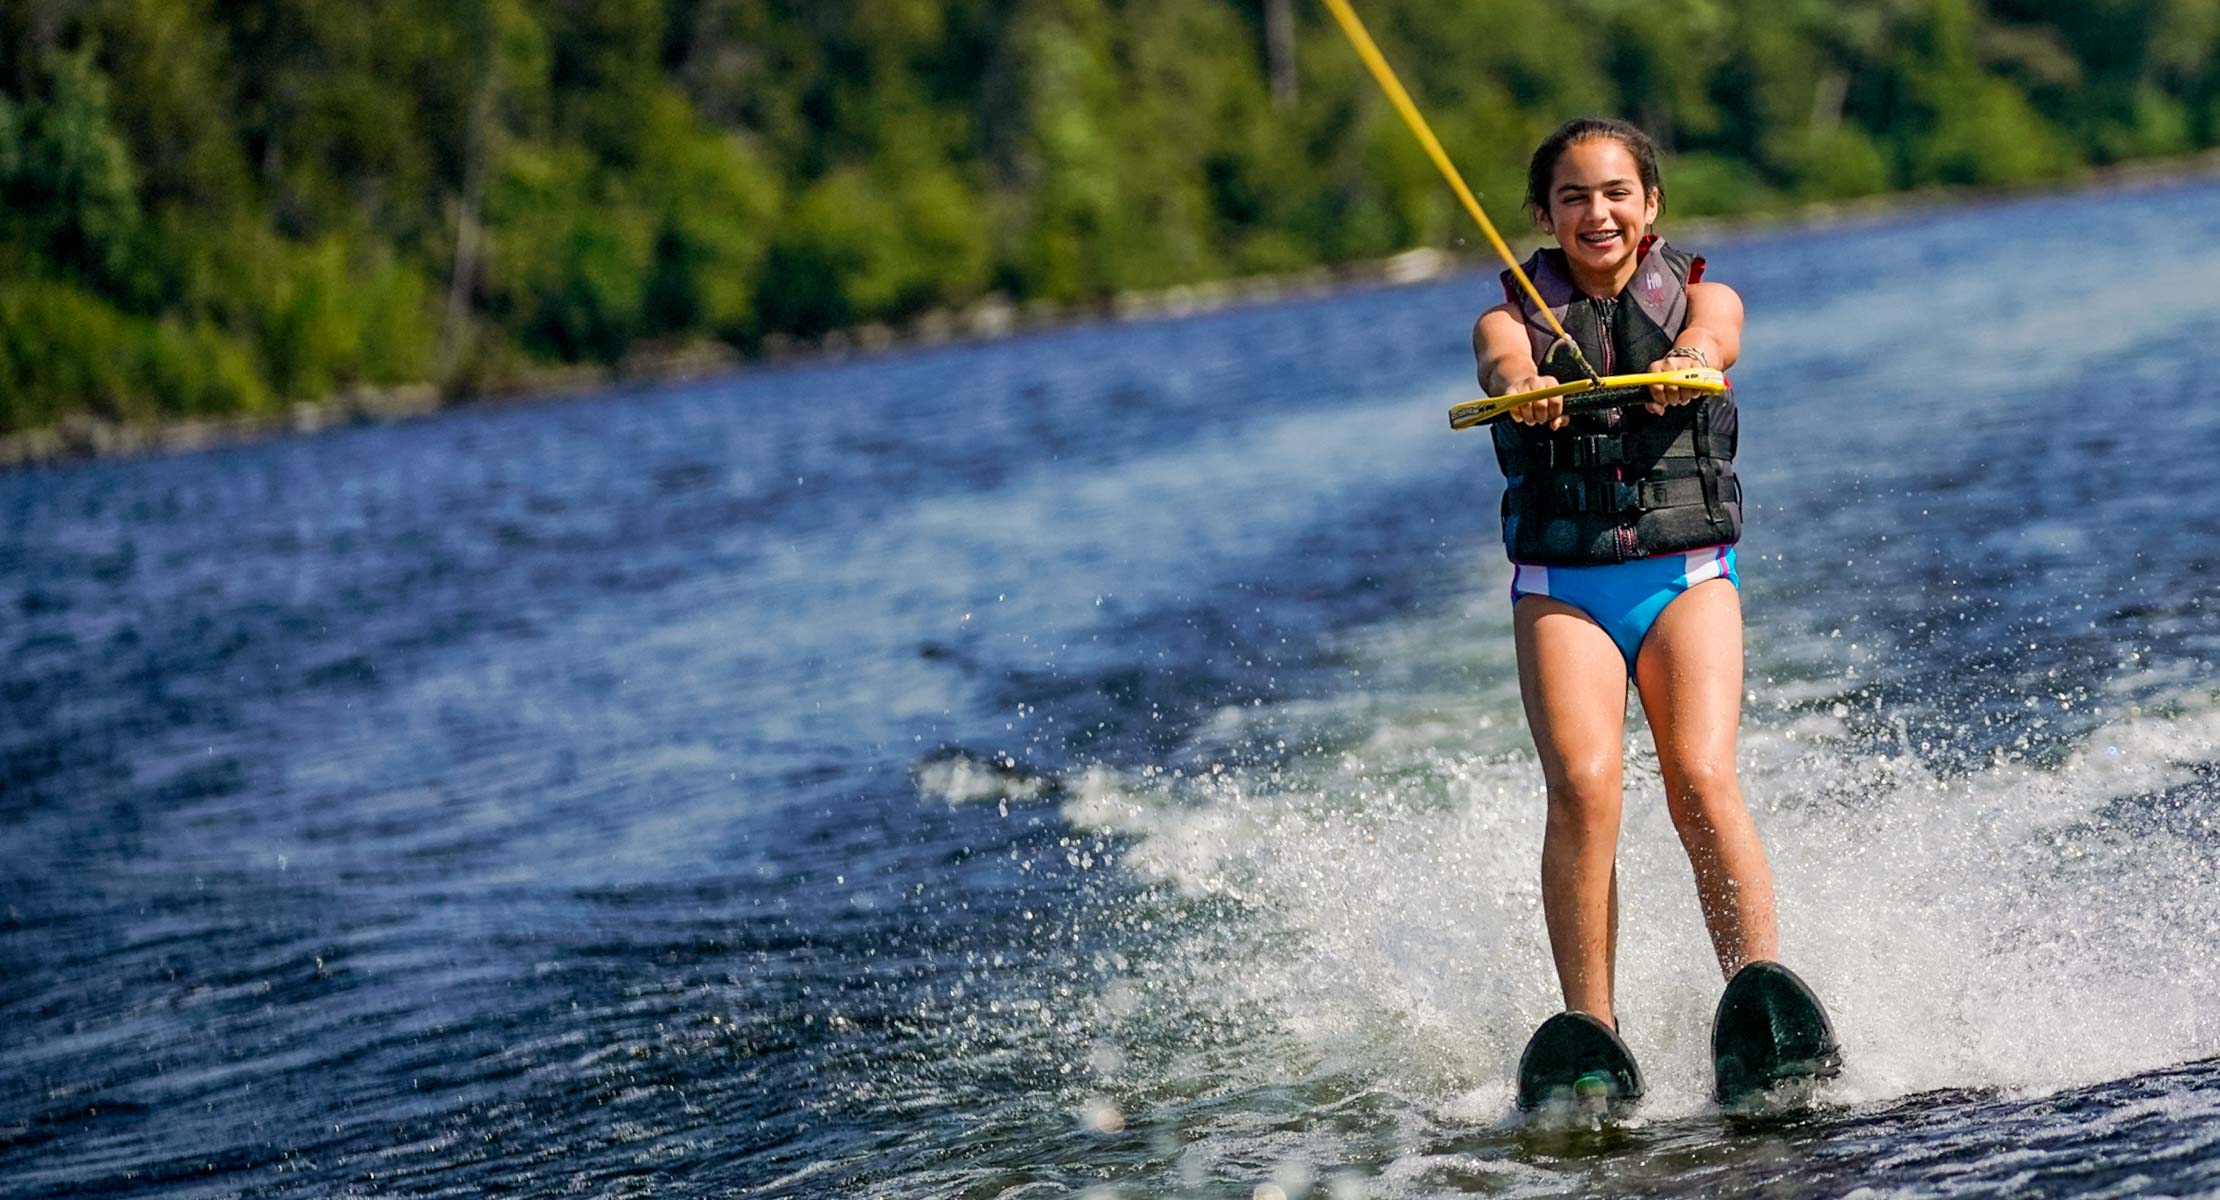 young girl smiling while water skiing